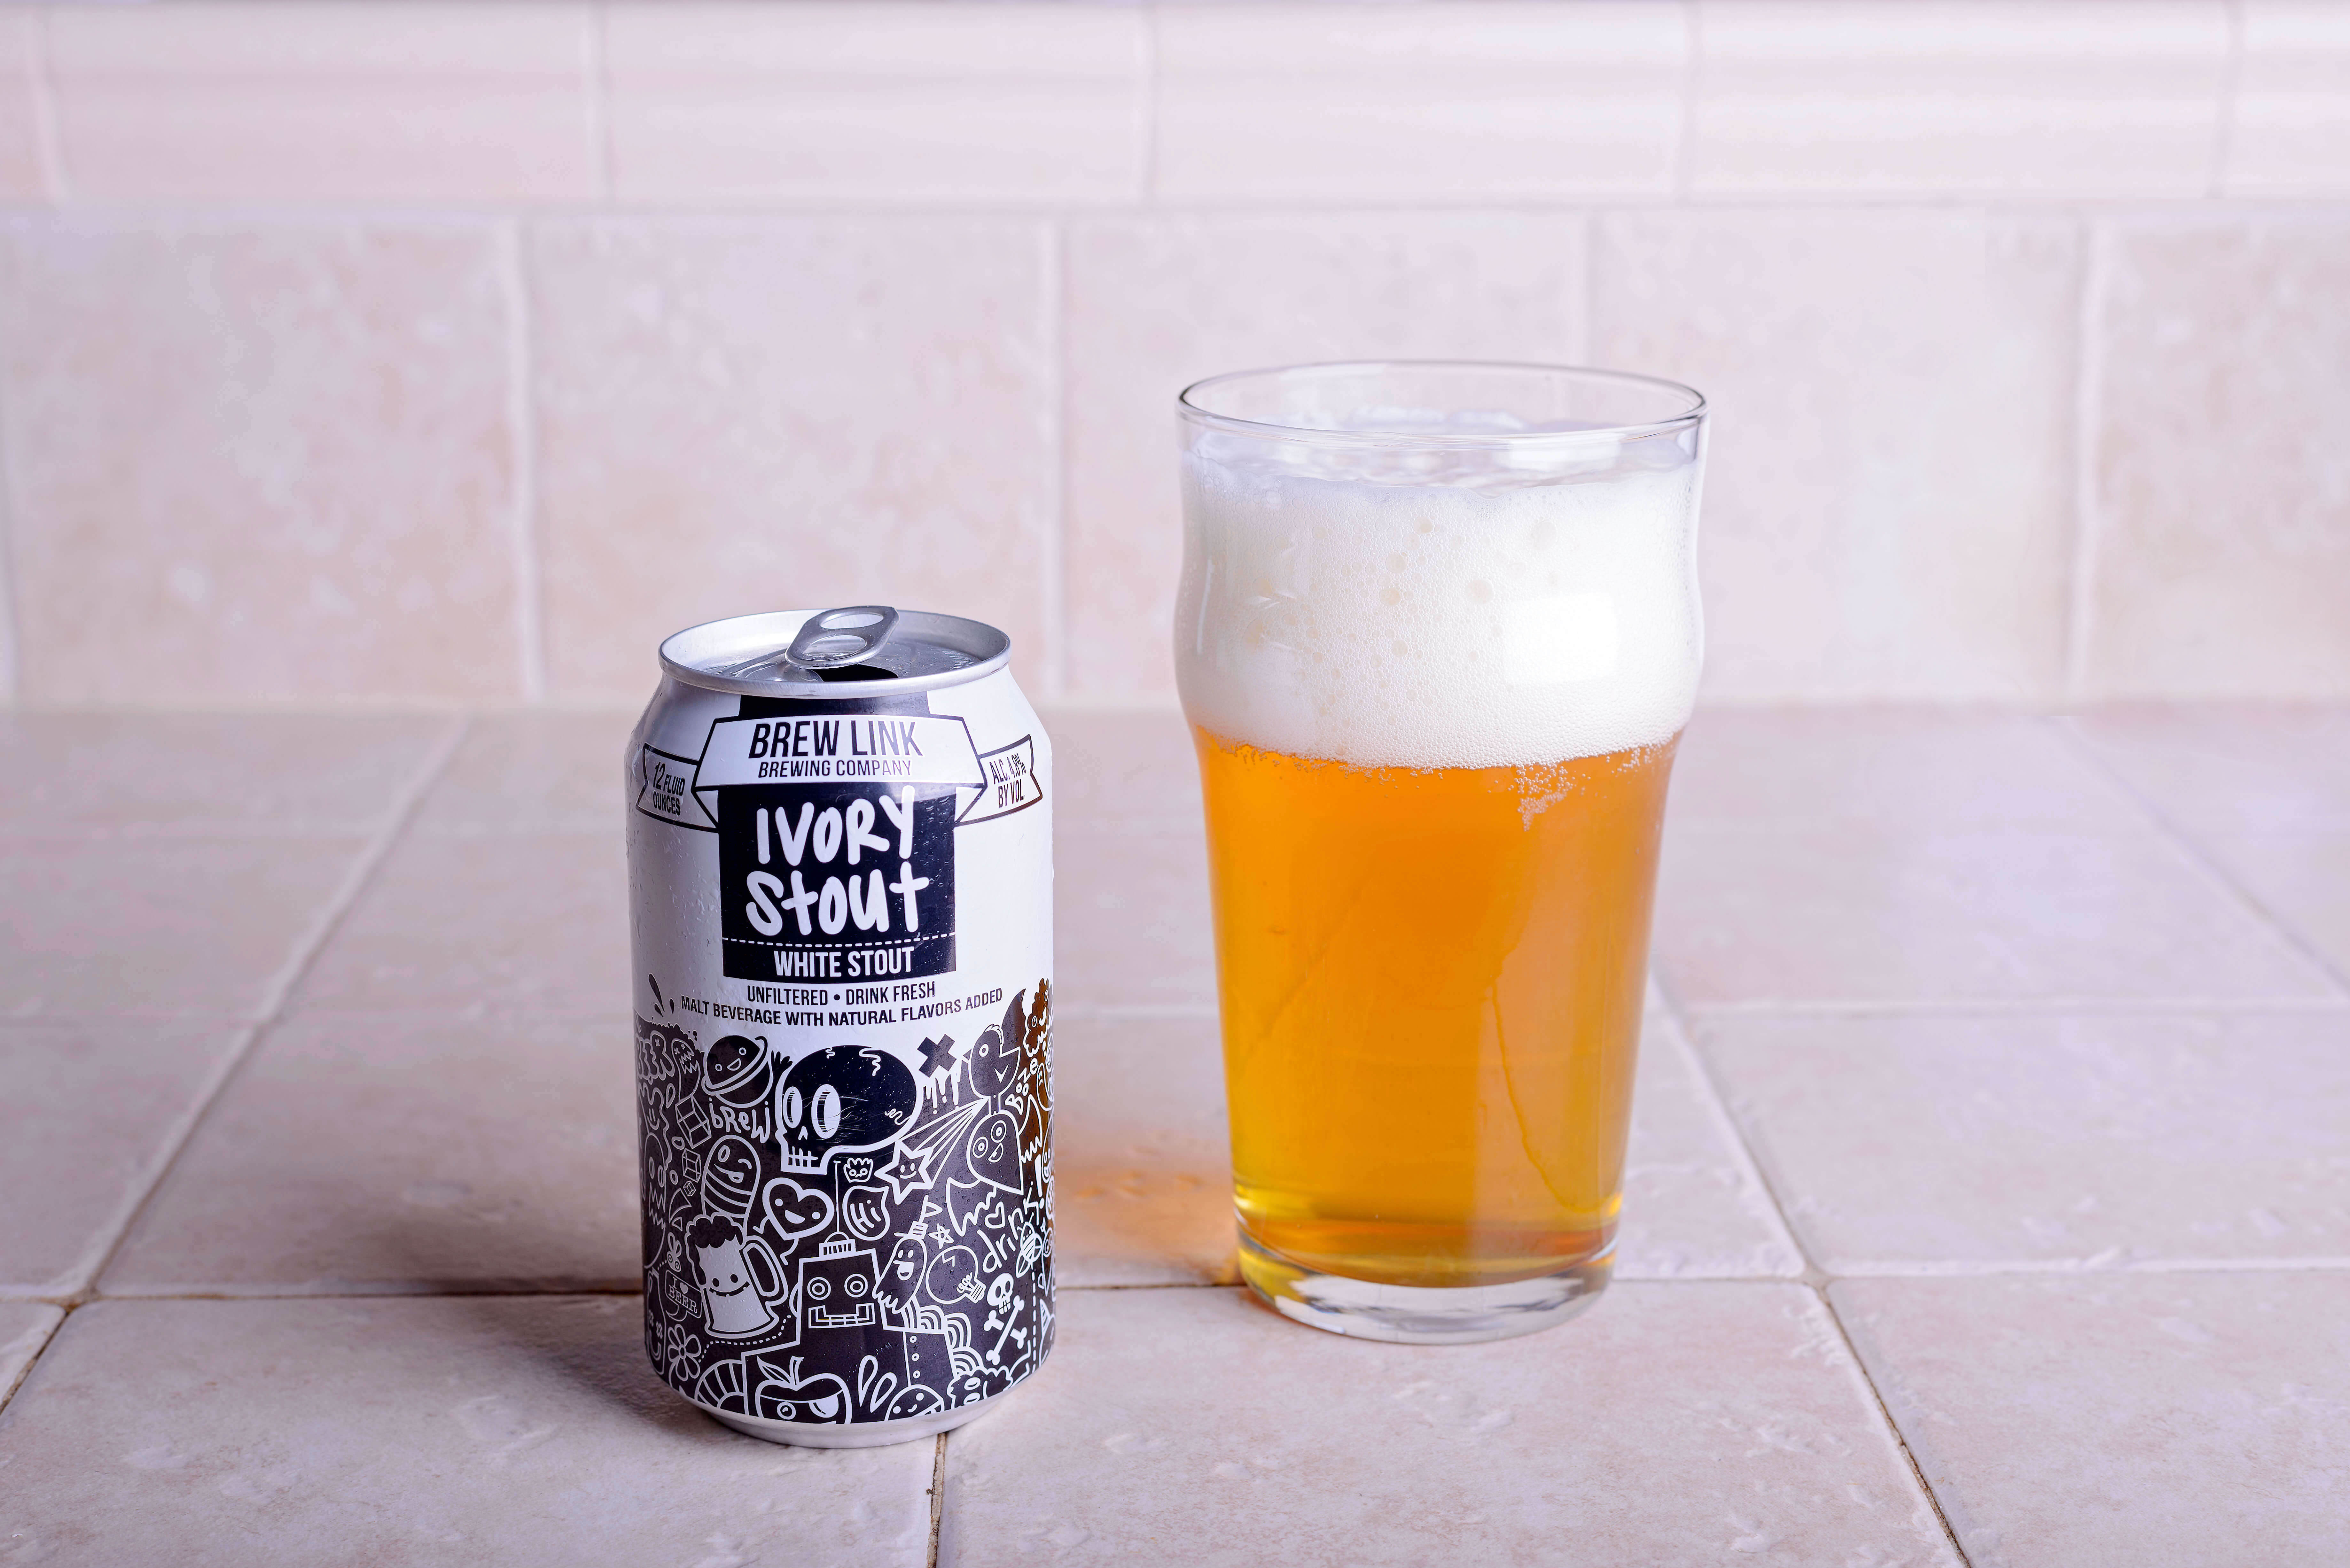 Ivory Stout (White Stout) - Brew Link Brewing Company